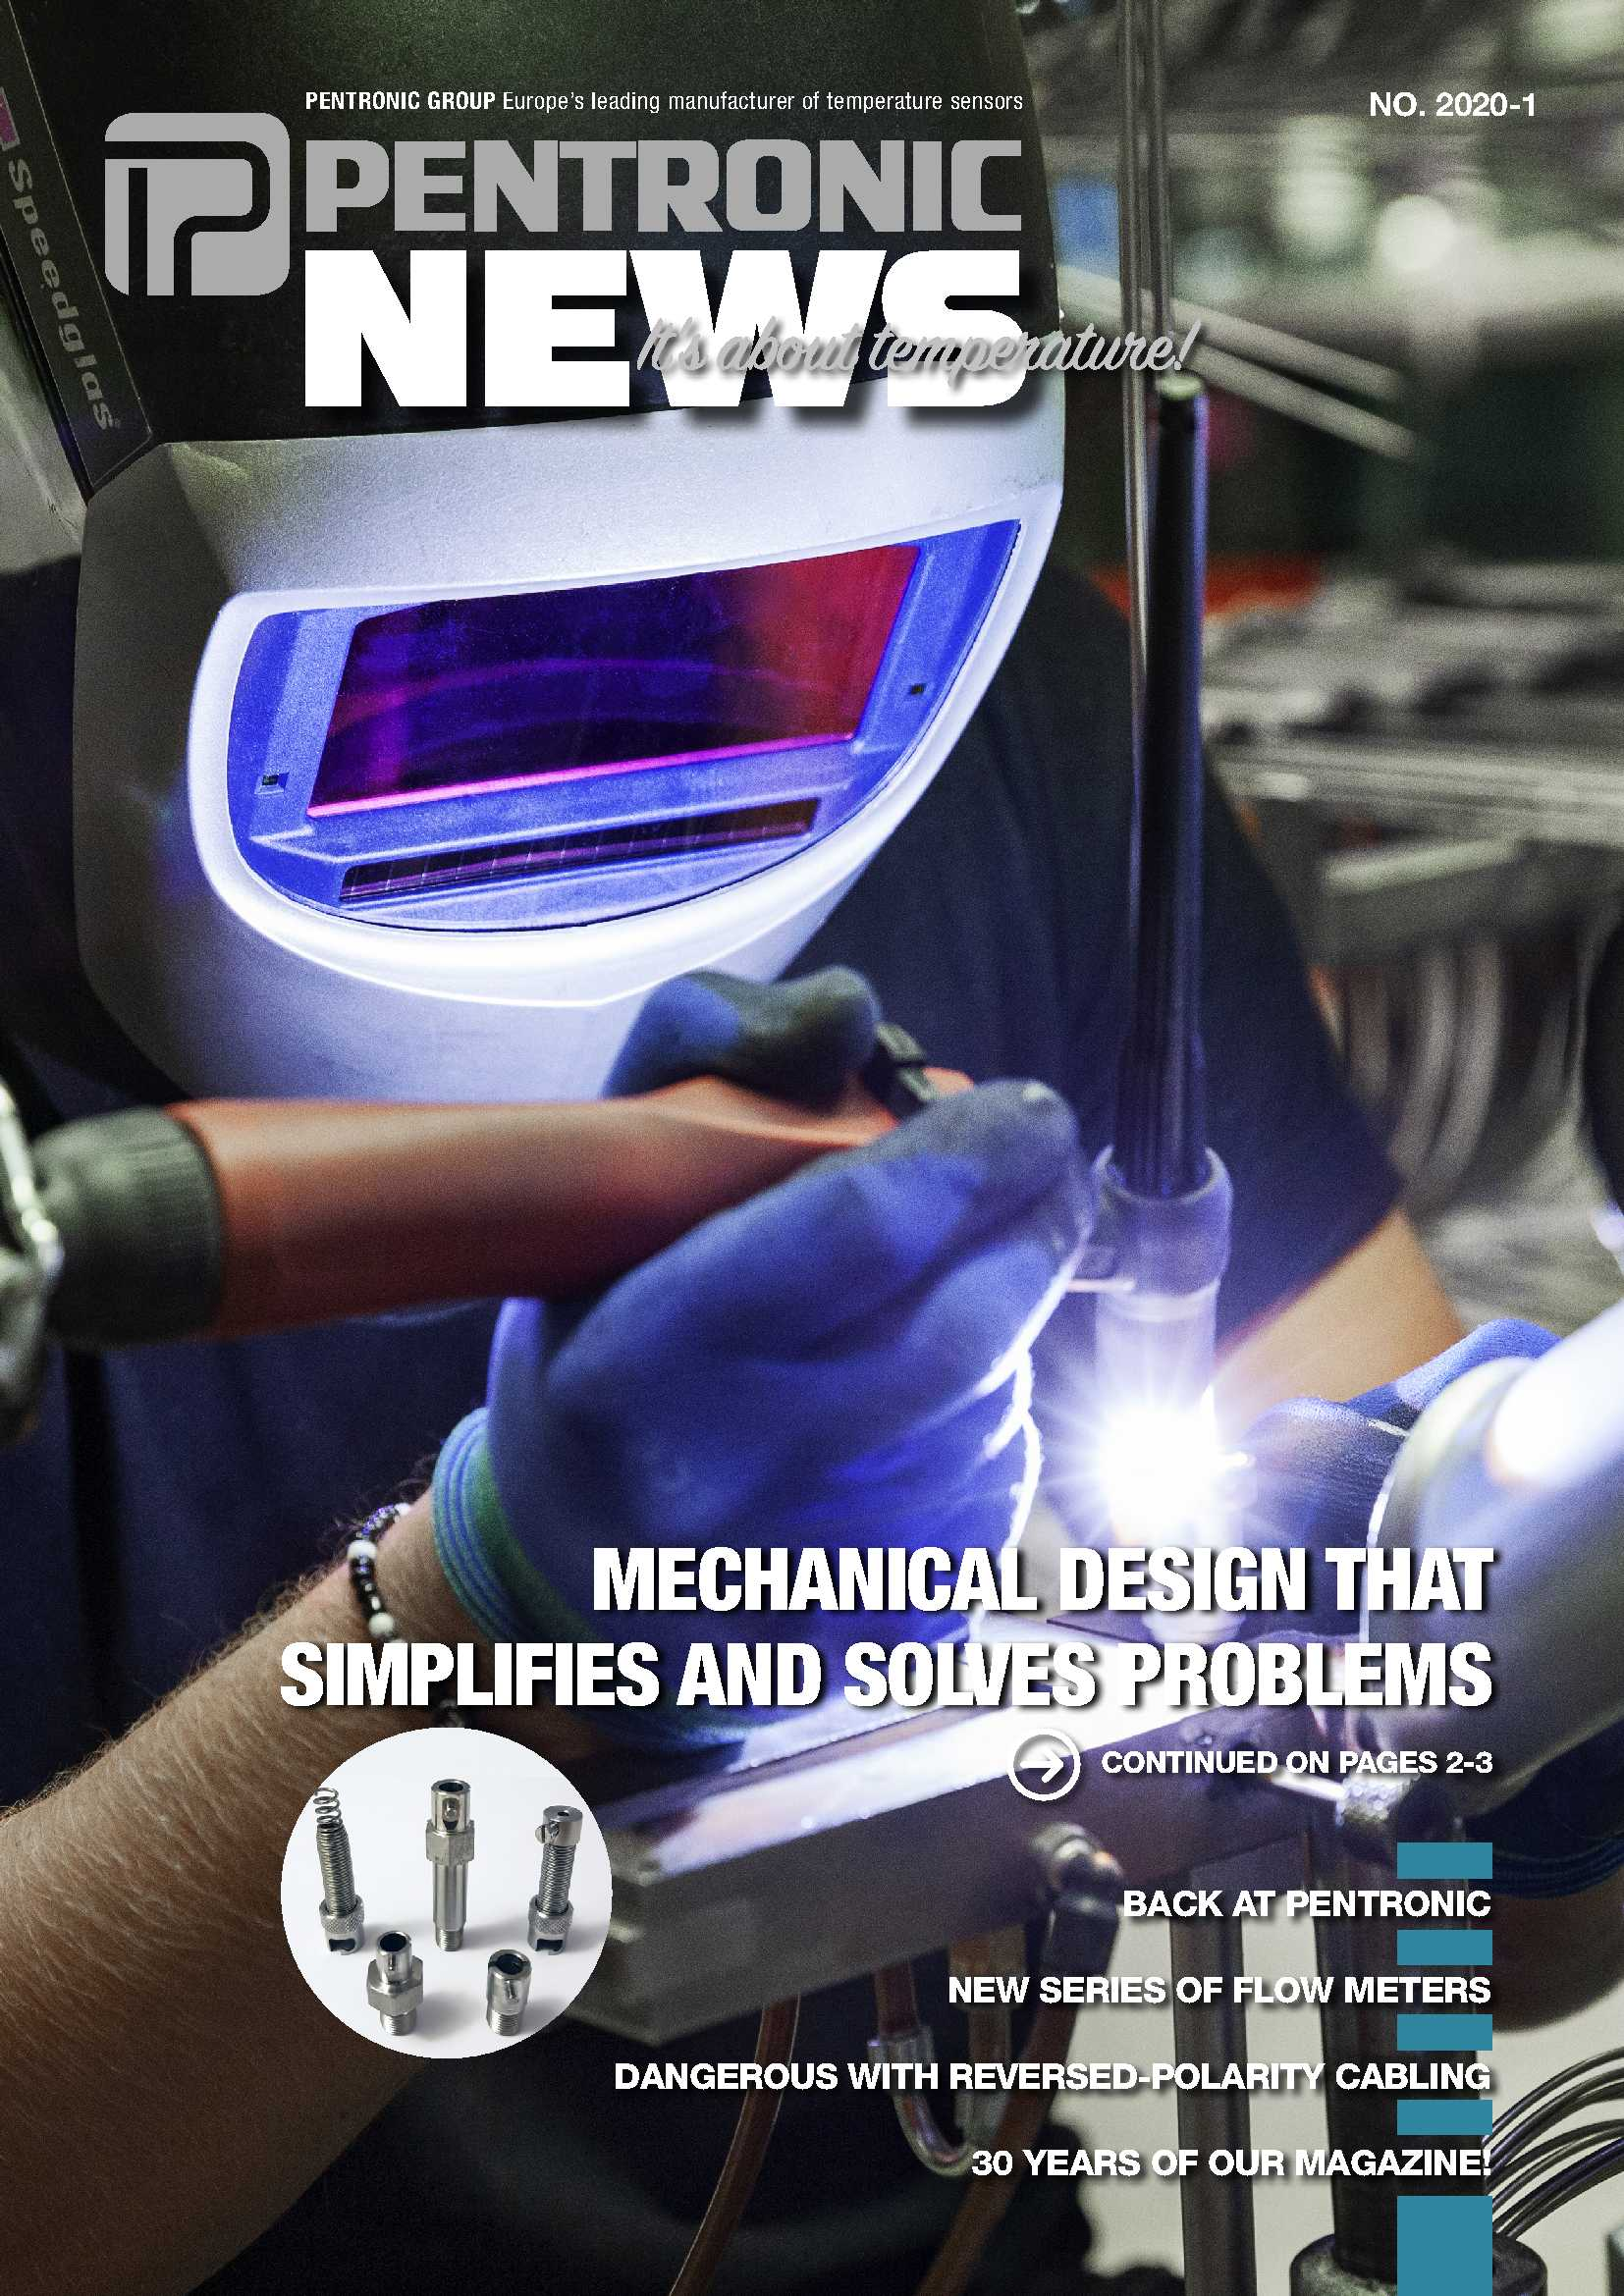 """Pentronic News 2020-1 includes tips about """"Mechanical design that simpifies and solves problems""""."""